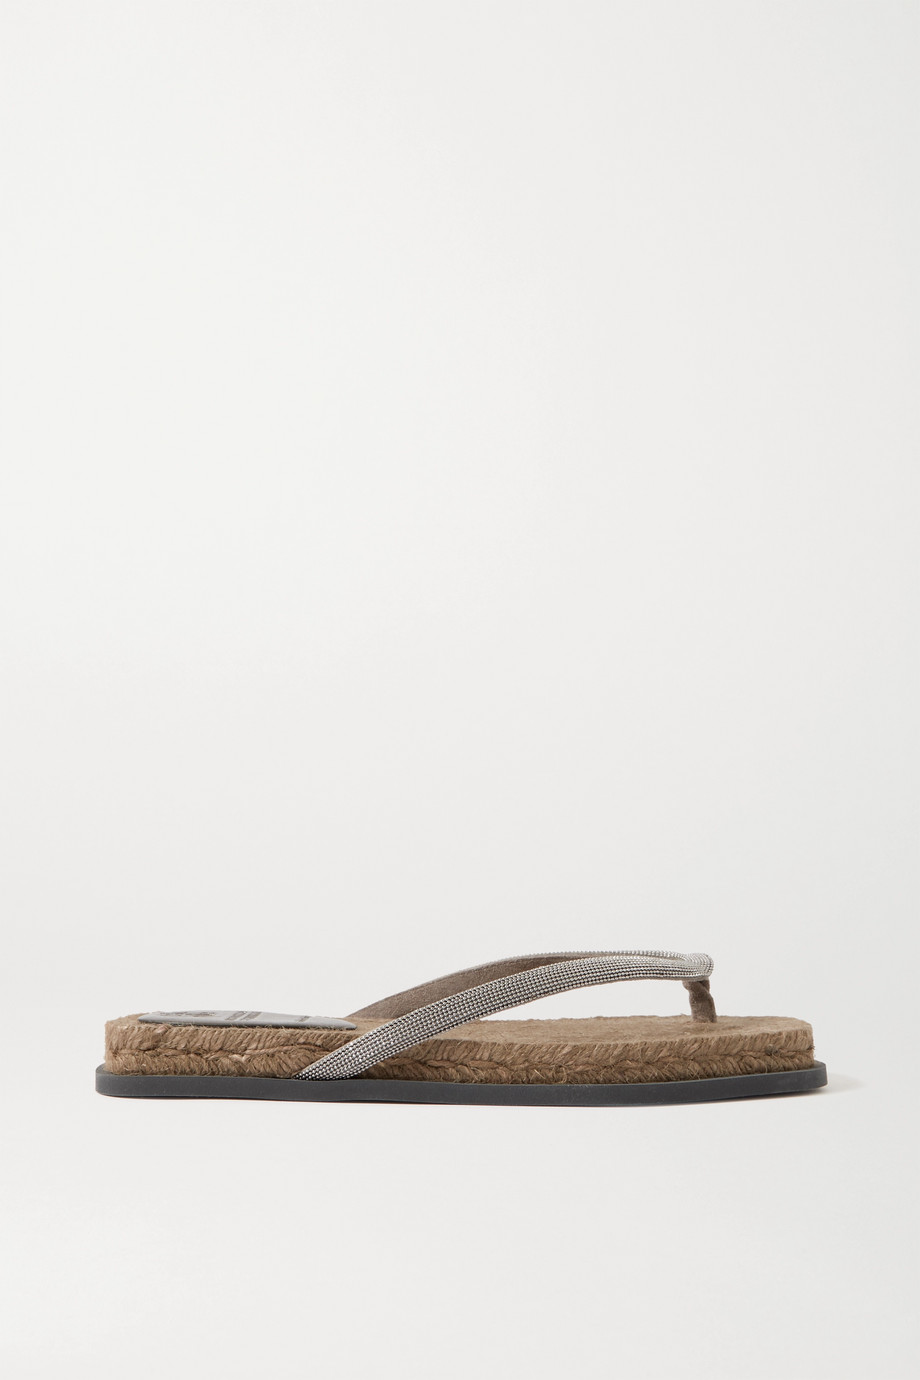 BRUNELLO CUCINELLI Beaded leather espadrille flip flops